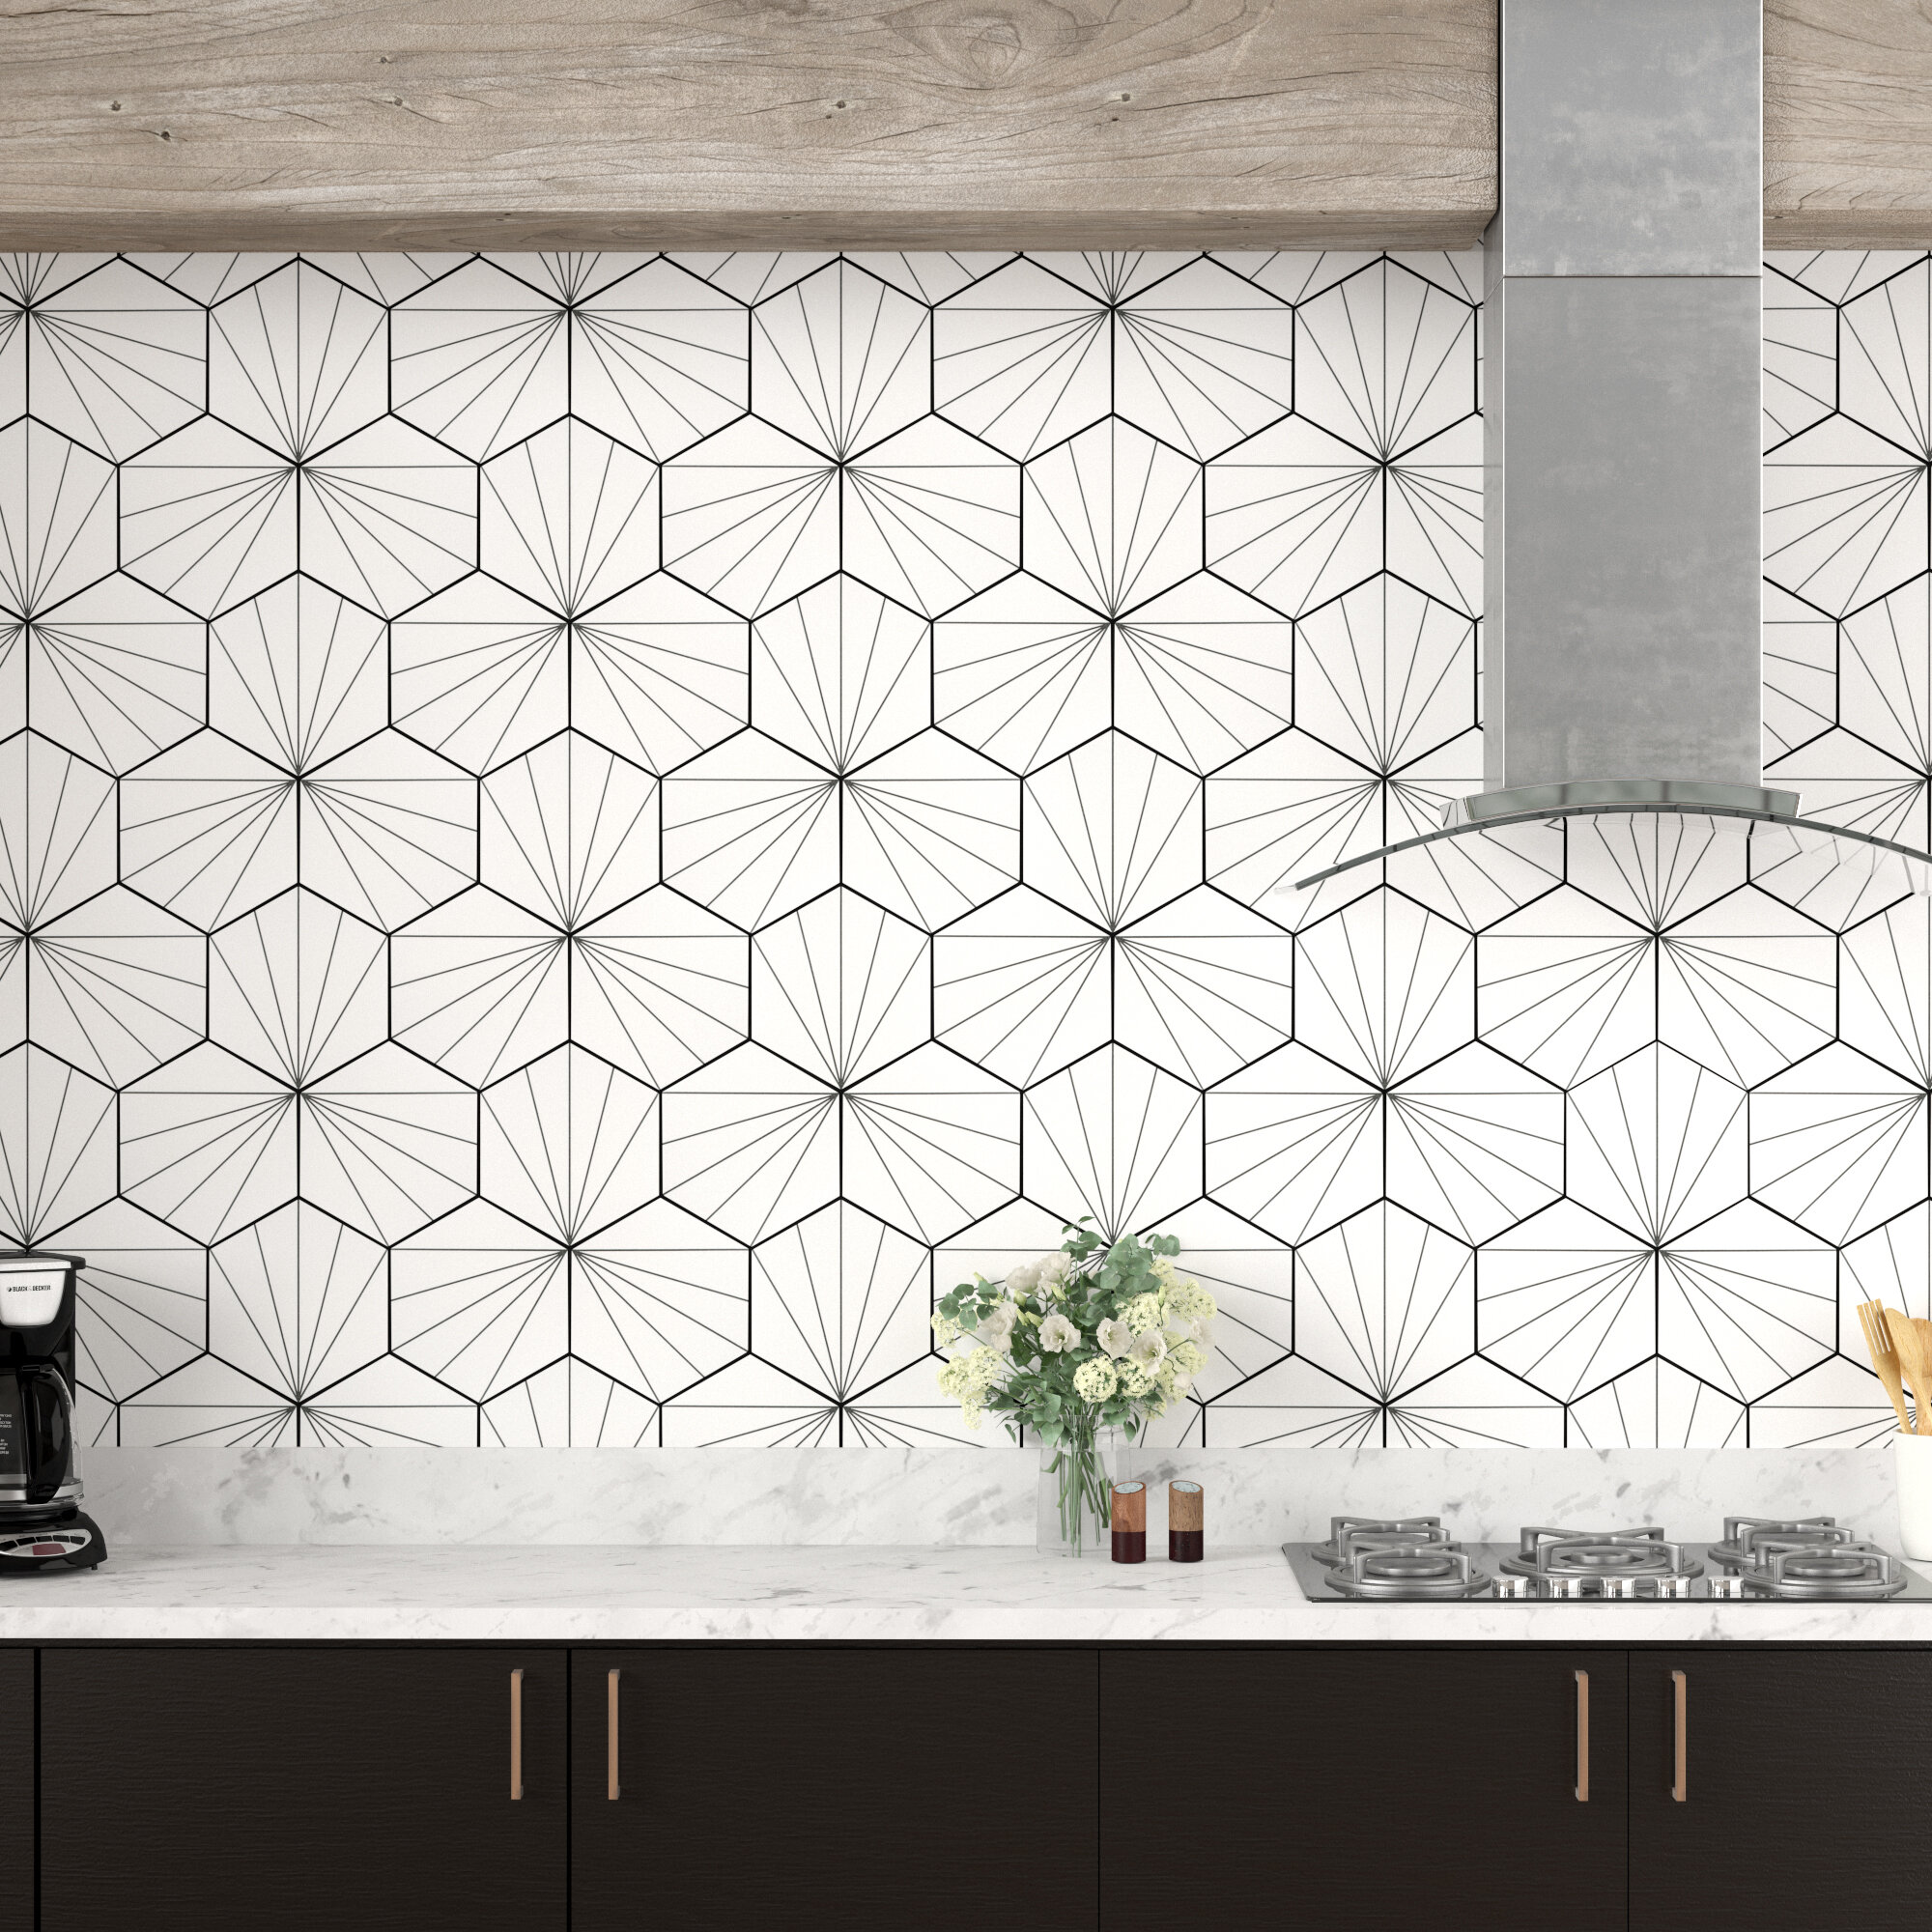 Backsplash Hexagon Floor Tiles Wall Tiles You Ll Love In 2021 Wayfair